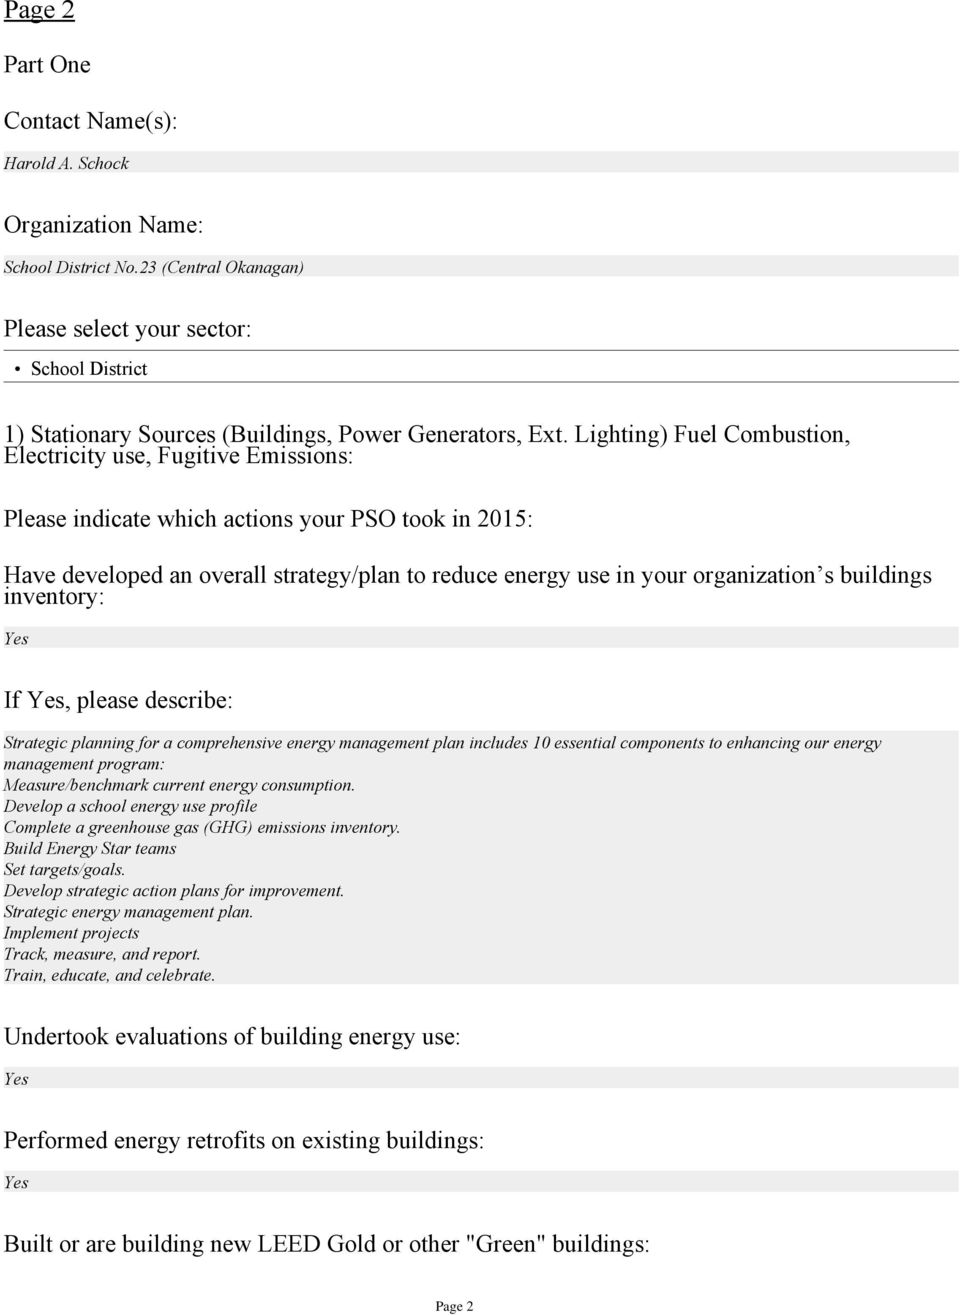 Lighting) Fuel Combustion, Electricity use, Fugitive Emissions: Please indicate which actions your PSO took in 2015: Have developed an overall strategy/plan to reduce energy use in your organization